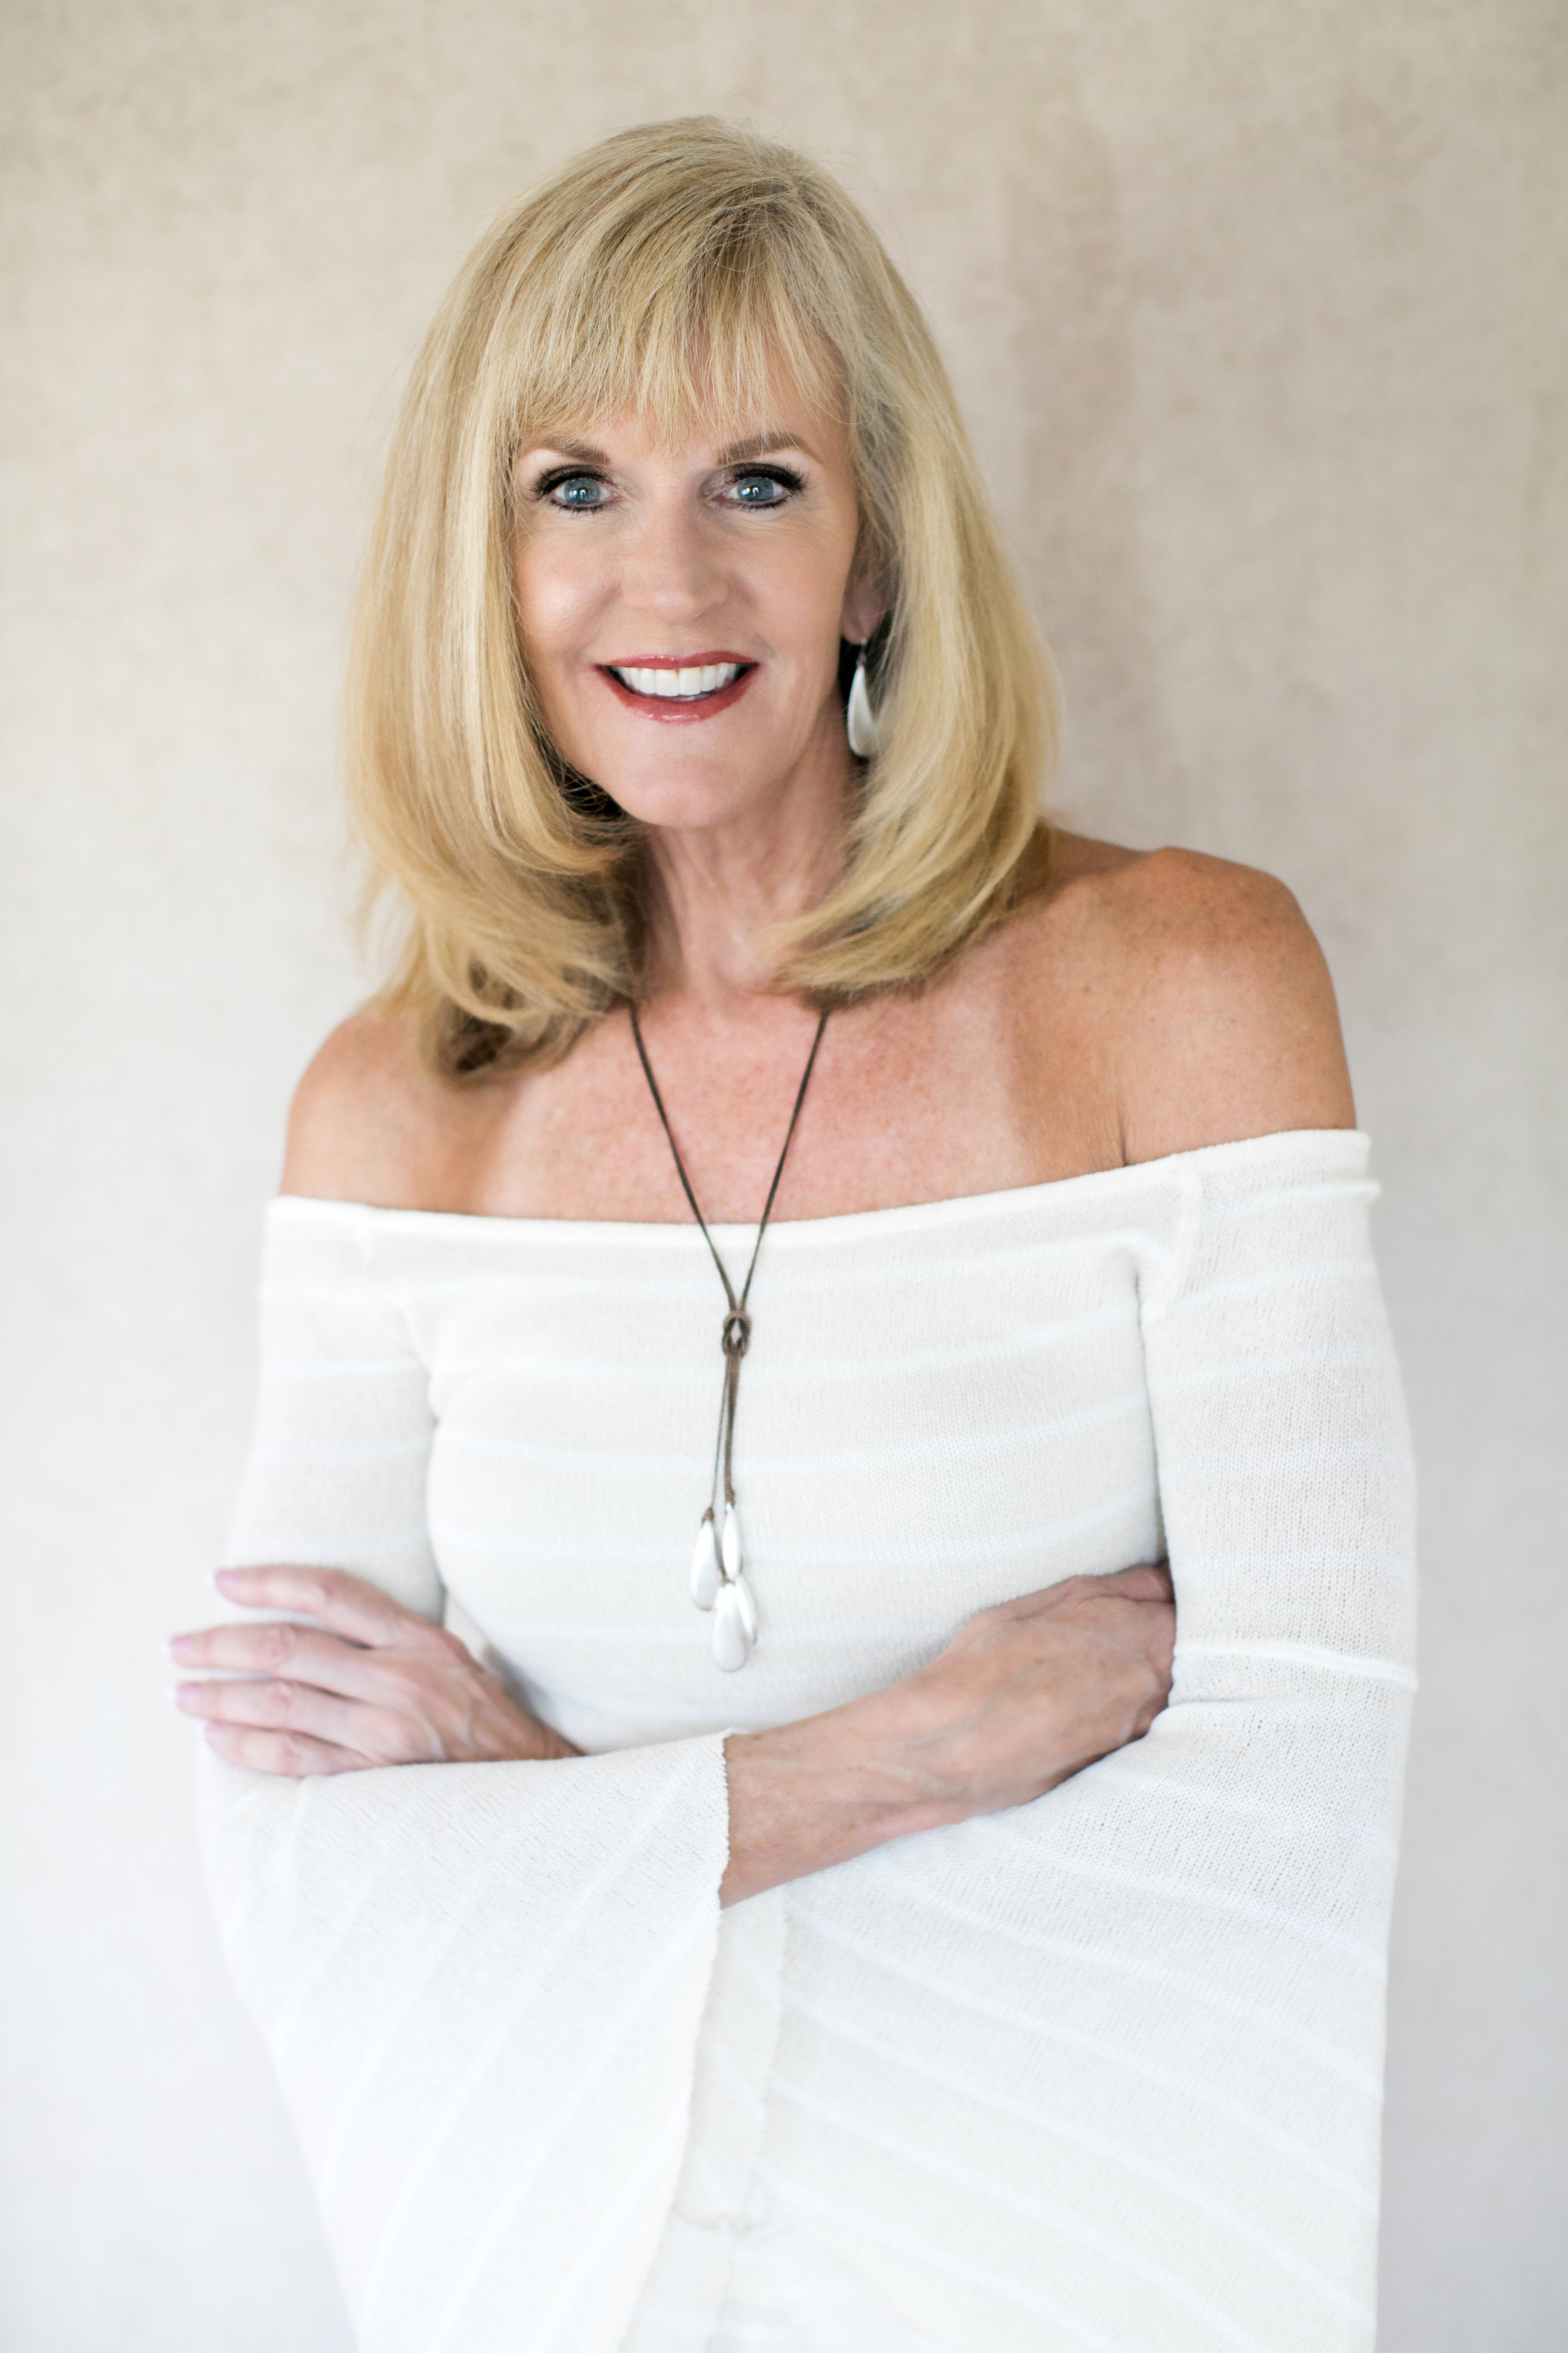 What You Receive: - As one of my '50 OVER 50' women, you will receive a wonderful package which includes:• Pre-consultation with me to discuss how you want to be photographed including a style consultation.• Hair and makeup on the day of the photo shoot (you will feel amazing!)• Fully guided professional photo shoot that you will truly enjoy.• A reviewing session where you can see all your beautiful photographs.• Two beautifully edited digitals. {**Please note that additional images start at $150 and discounts are given for orders of 5**}•Invitation to the '50 OVER 50′ exhibition where you will see your portrait hung alongside all the other participants… and have the opportunity to meet each other as well!Other conditions may apply.I am offering the 50 OVER 50 special promotion package for just $450 +tax. The total value is $690.The project will be promoted in many ways so you'll need to be happy with…•Being interviewed by me before and after the photoshoot about being a woman over 50. This may include video interviews.•That interview being shared on my website and social media.•Before and After makeover photos to be shown.•Your photo being displayed at the exhibition.I will keep in touch with all participants throughout the project with updates, insights and information.